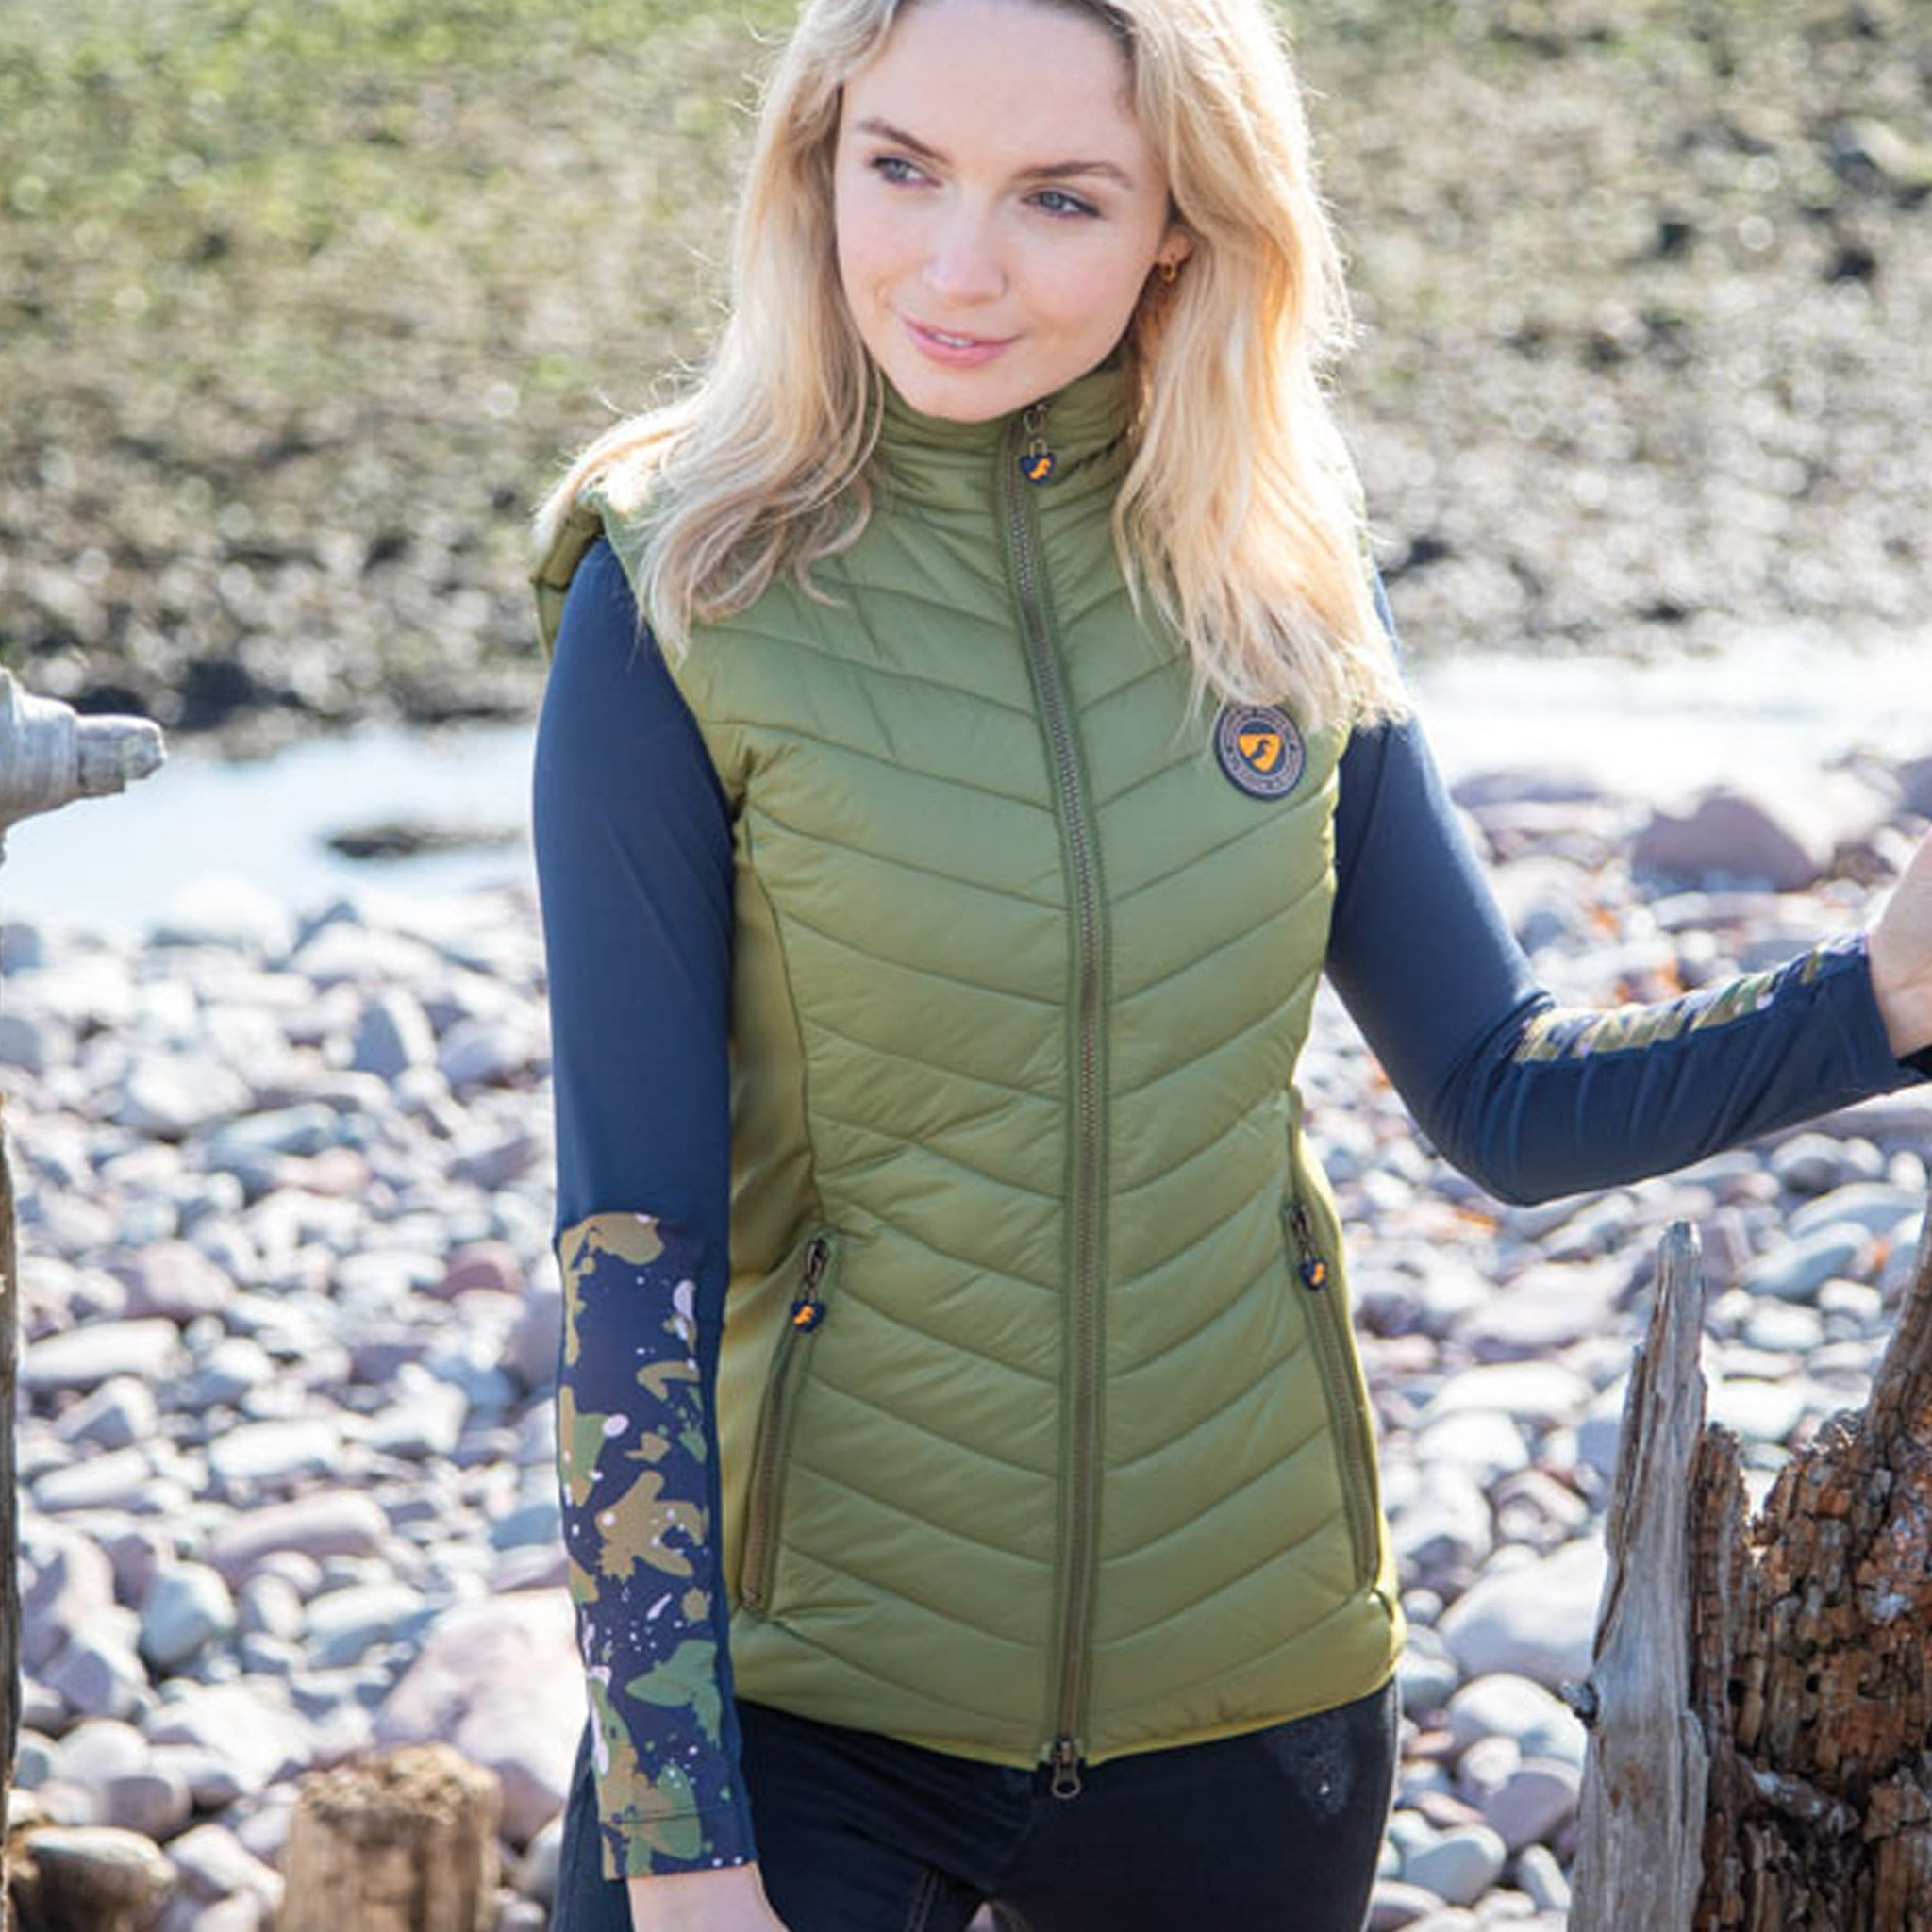 Shires Aubrion Cannon Insulated Gilet 8152 Olive Green On Model On Rocks